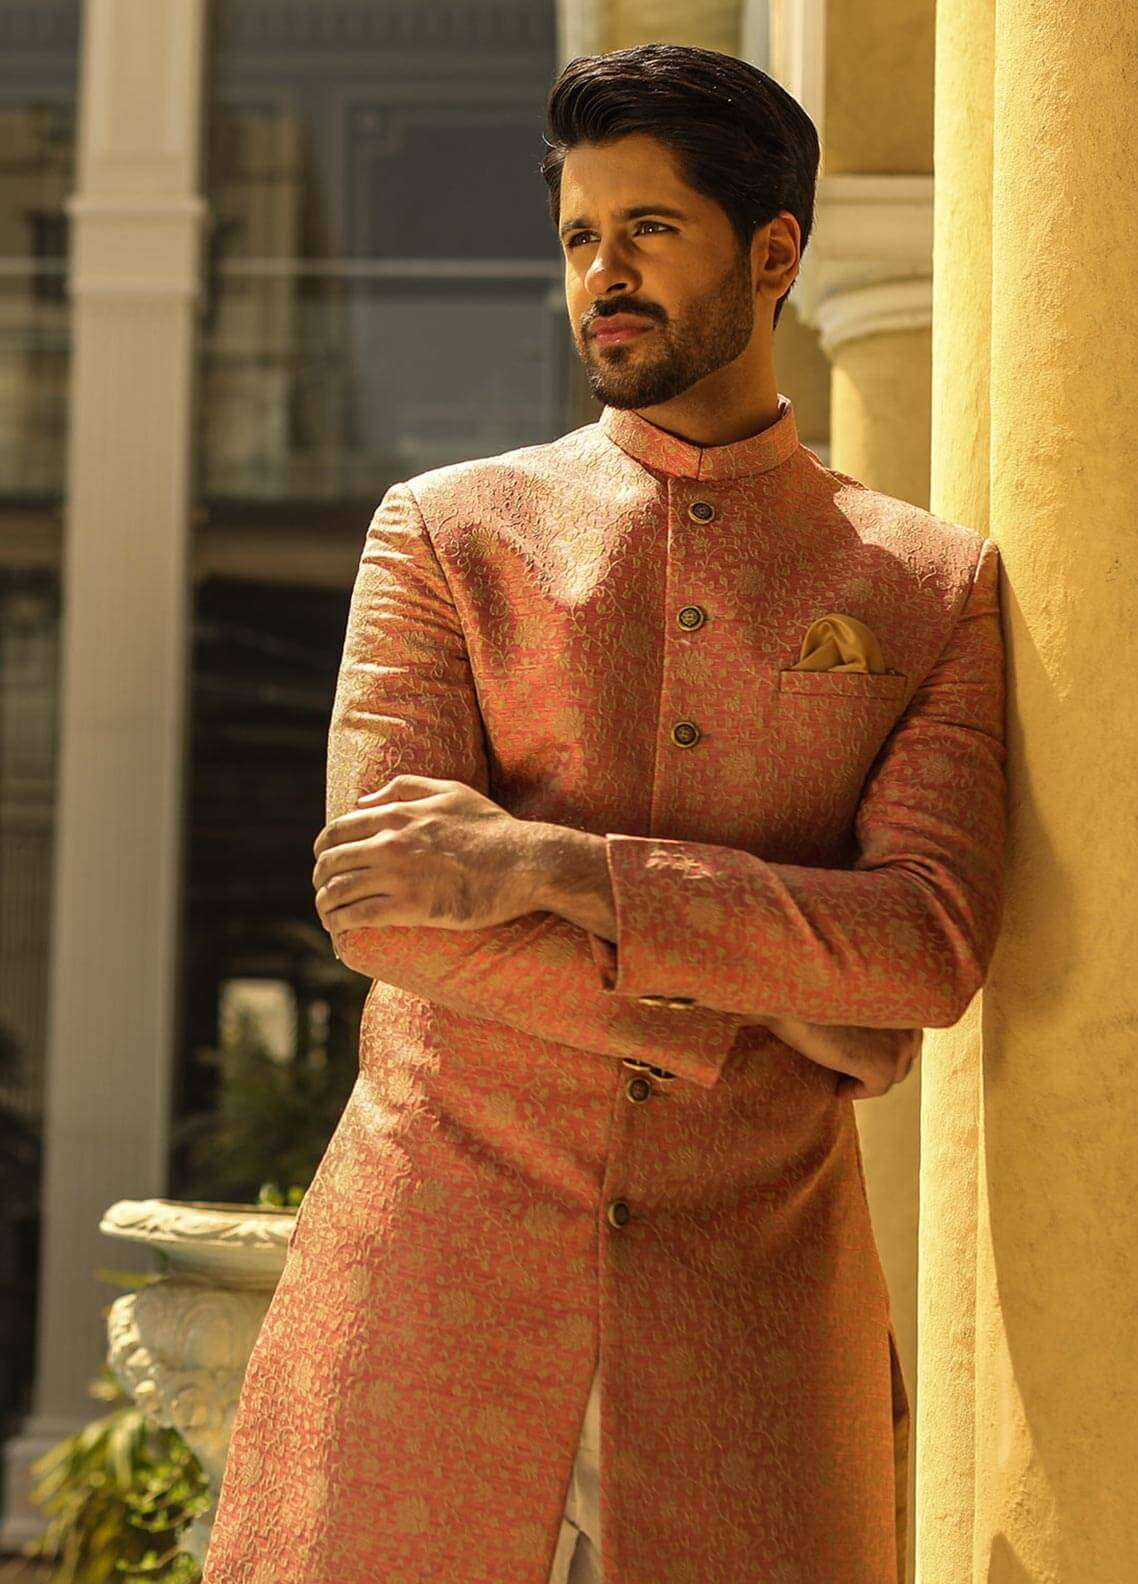 Edenrobe Cotton Wedding Men Sherwanis - Peach 007180